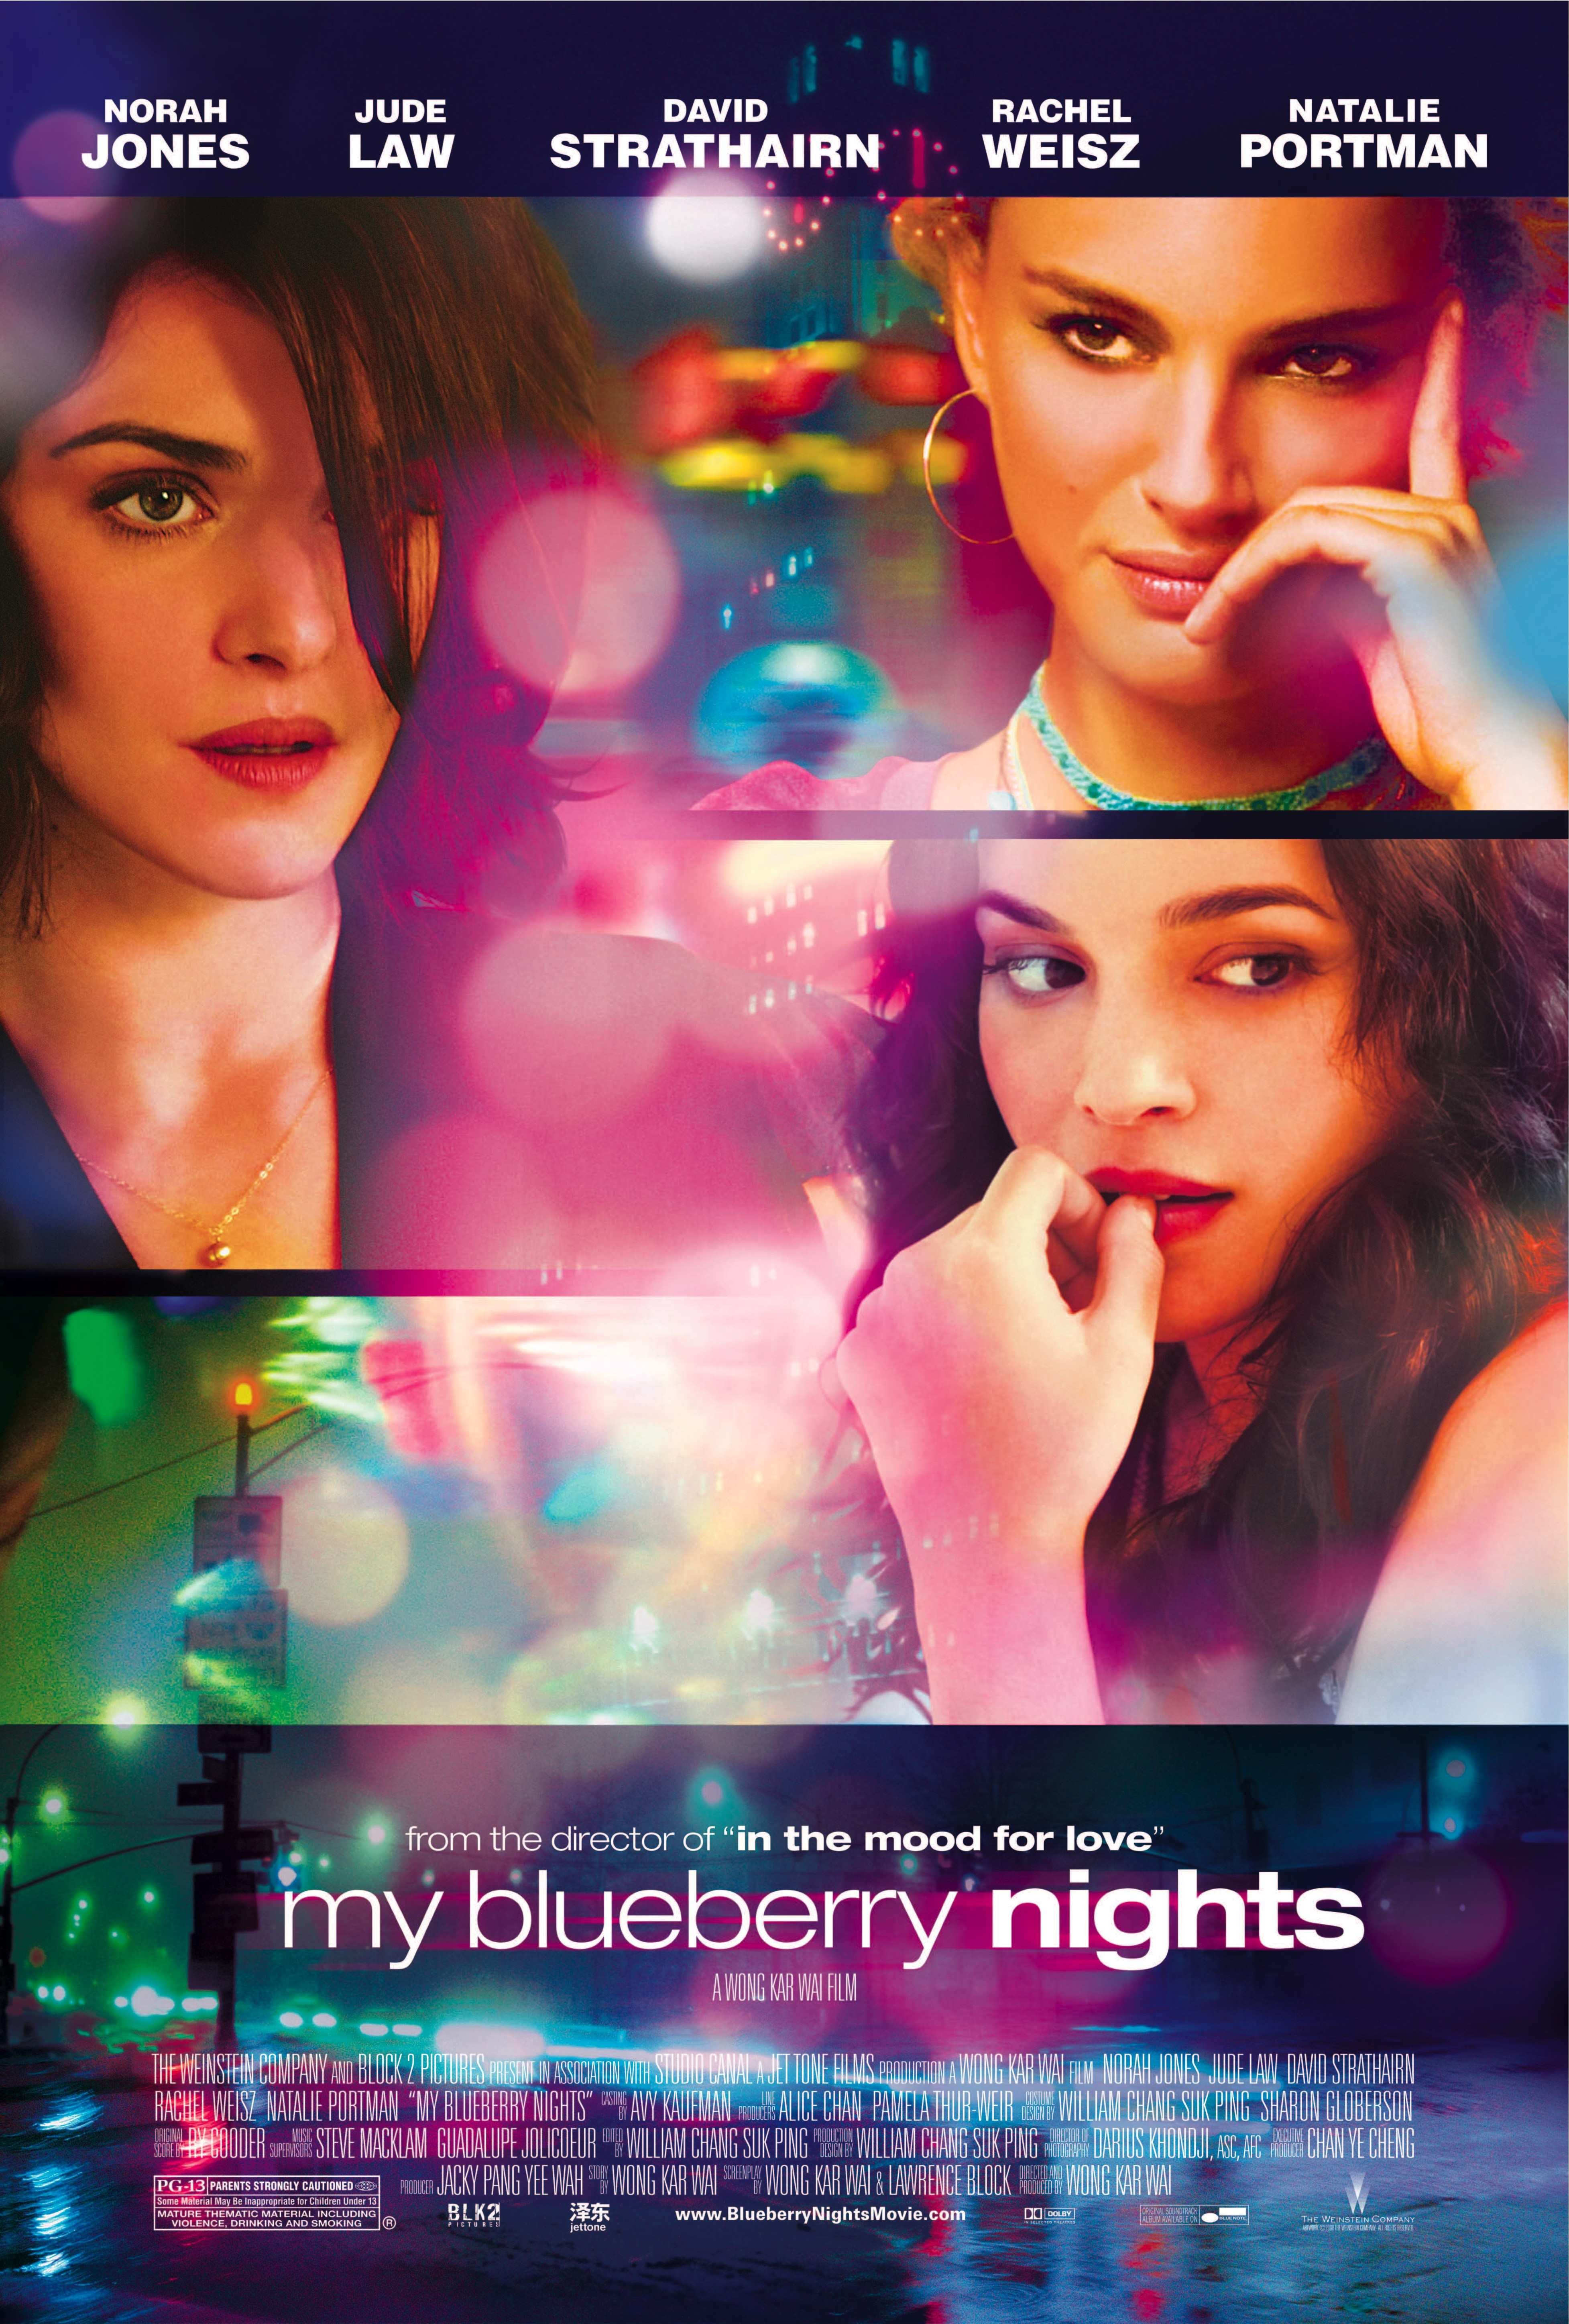 Poster Art Hits Web For 'My Blueberry Nights' With Natalie ...